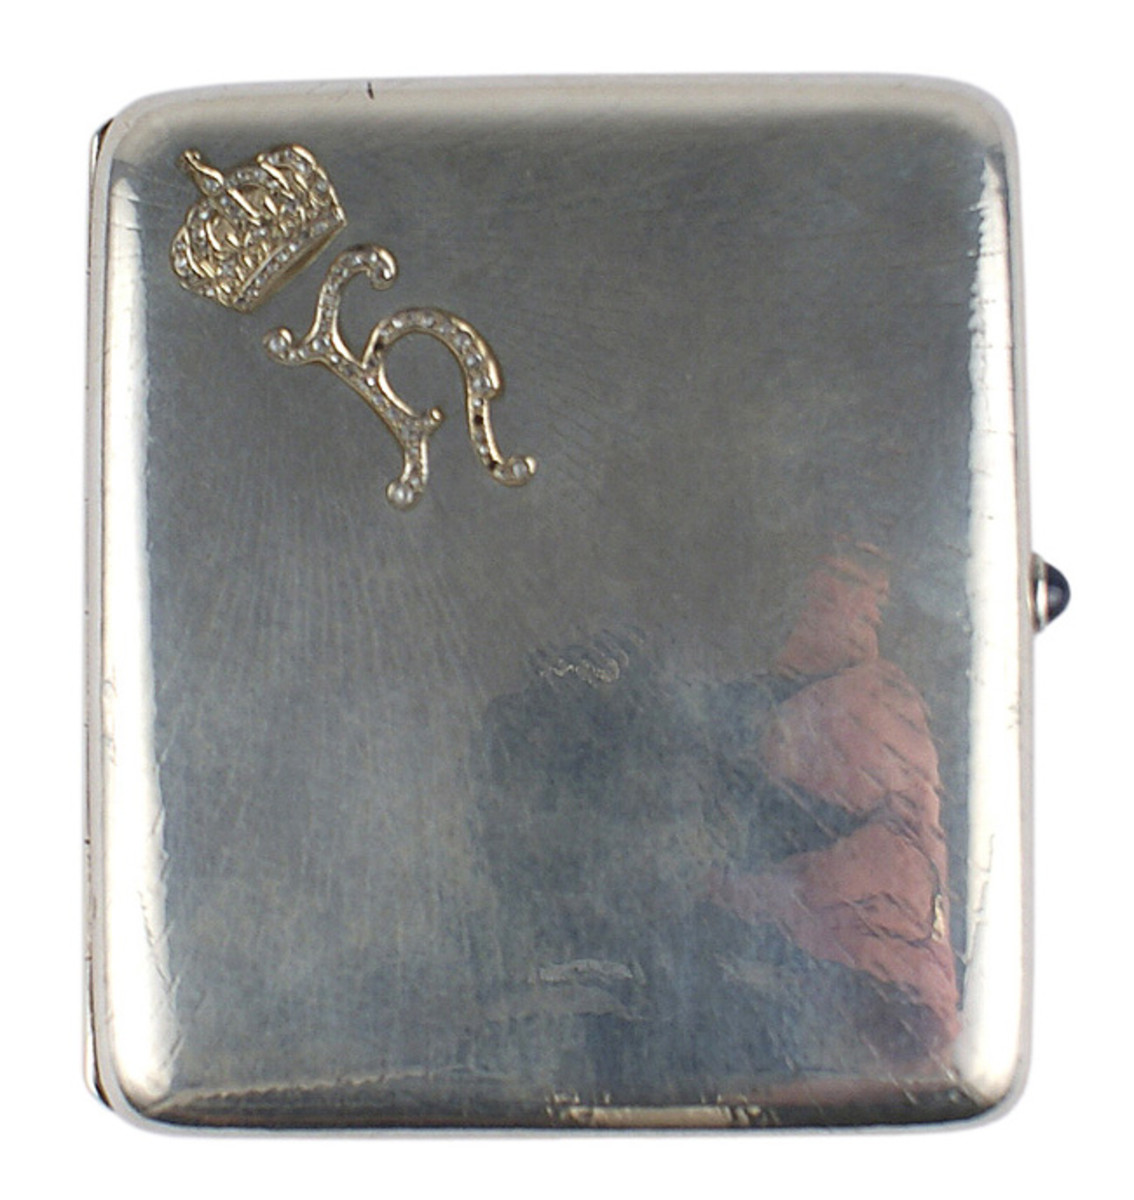 The personal silver cigarette case of Princess Hermine Reuss of Greiz, second wife of Kaiser Wilhelm II ($2,440).